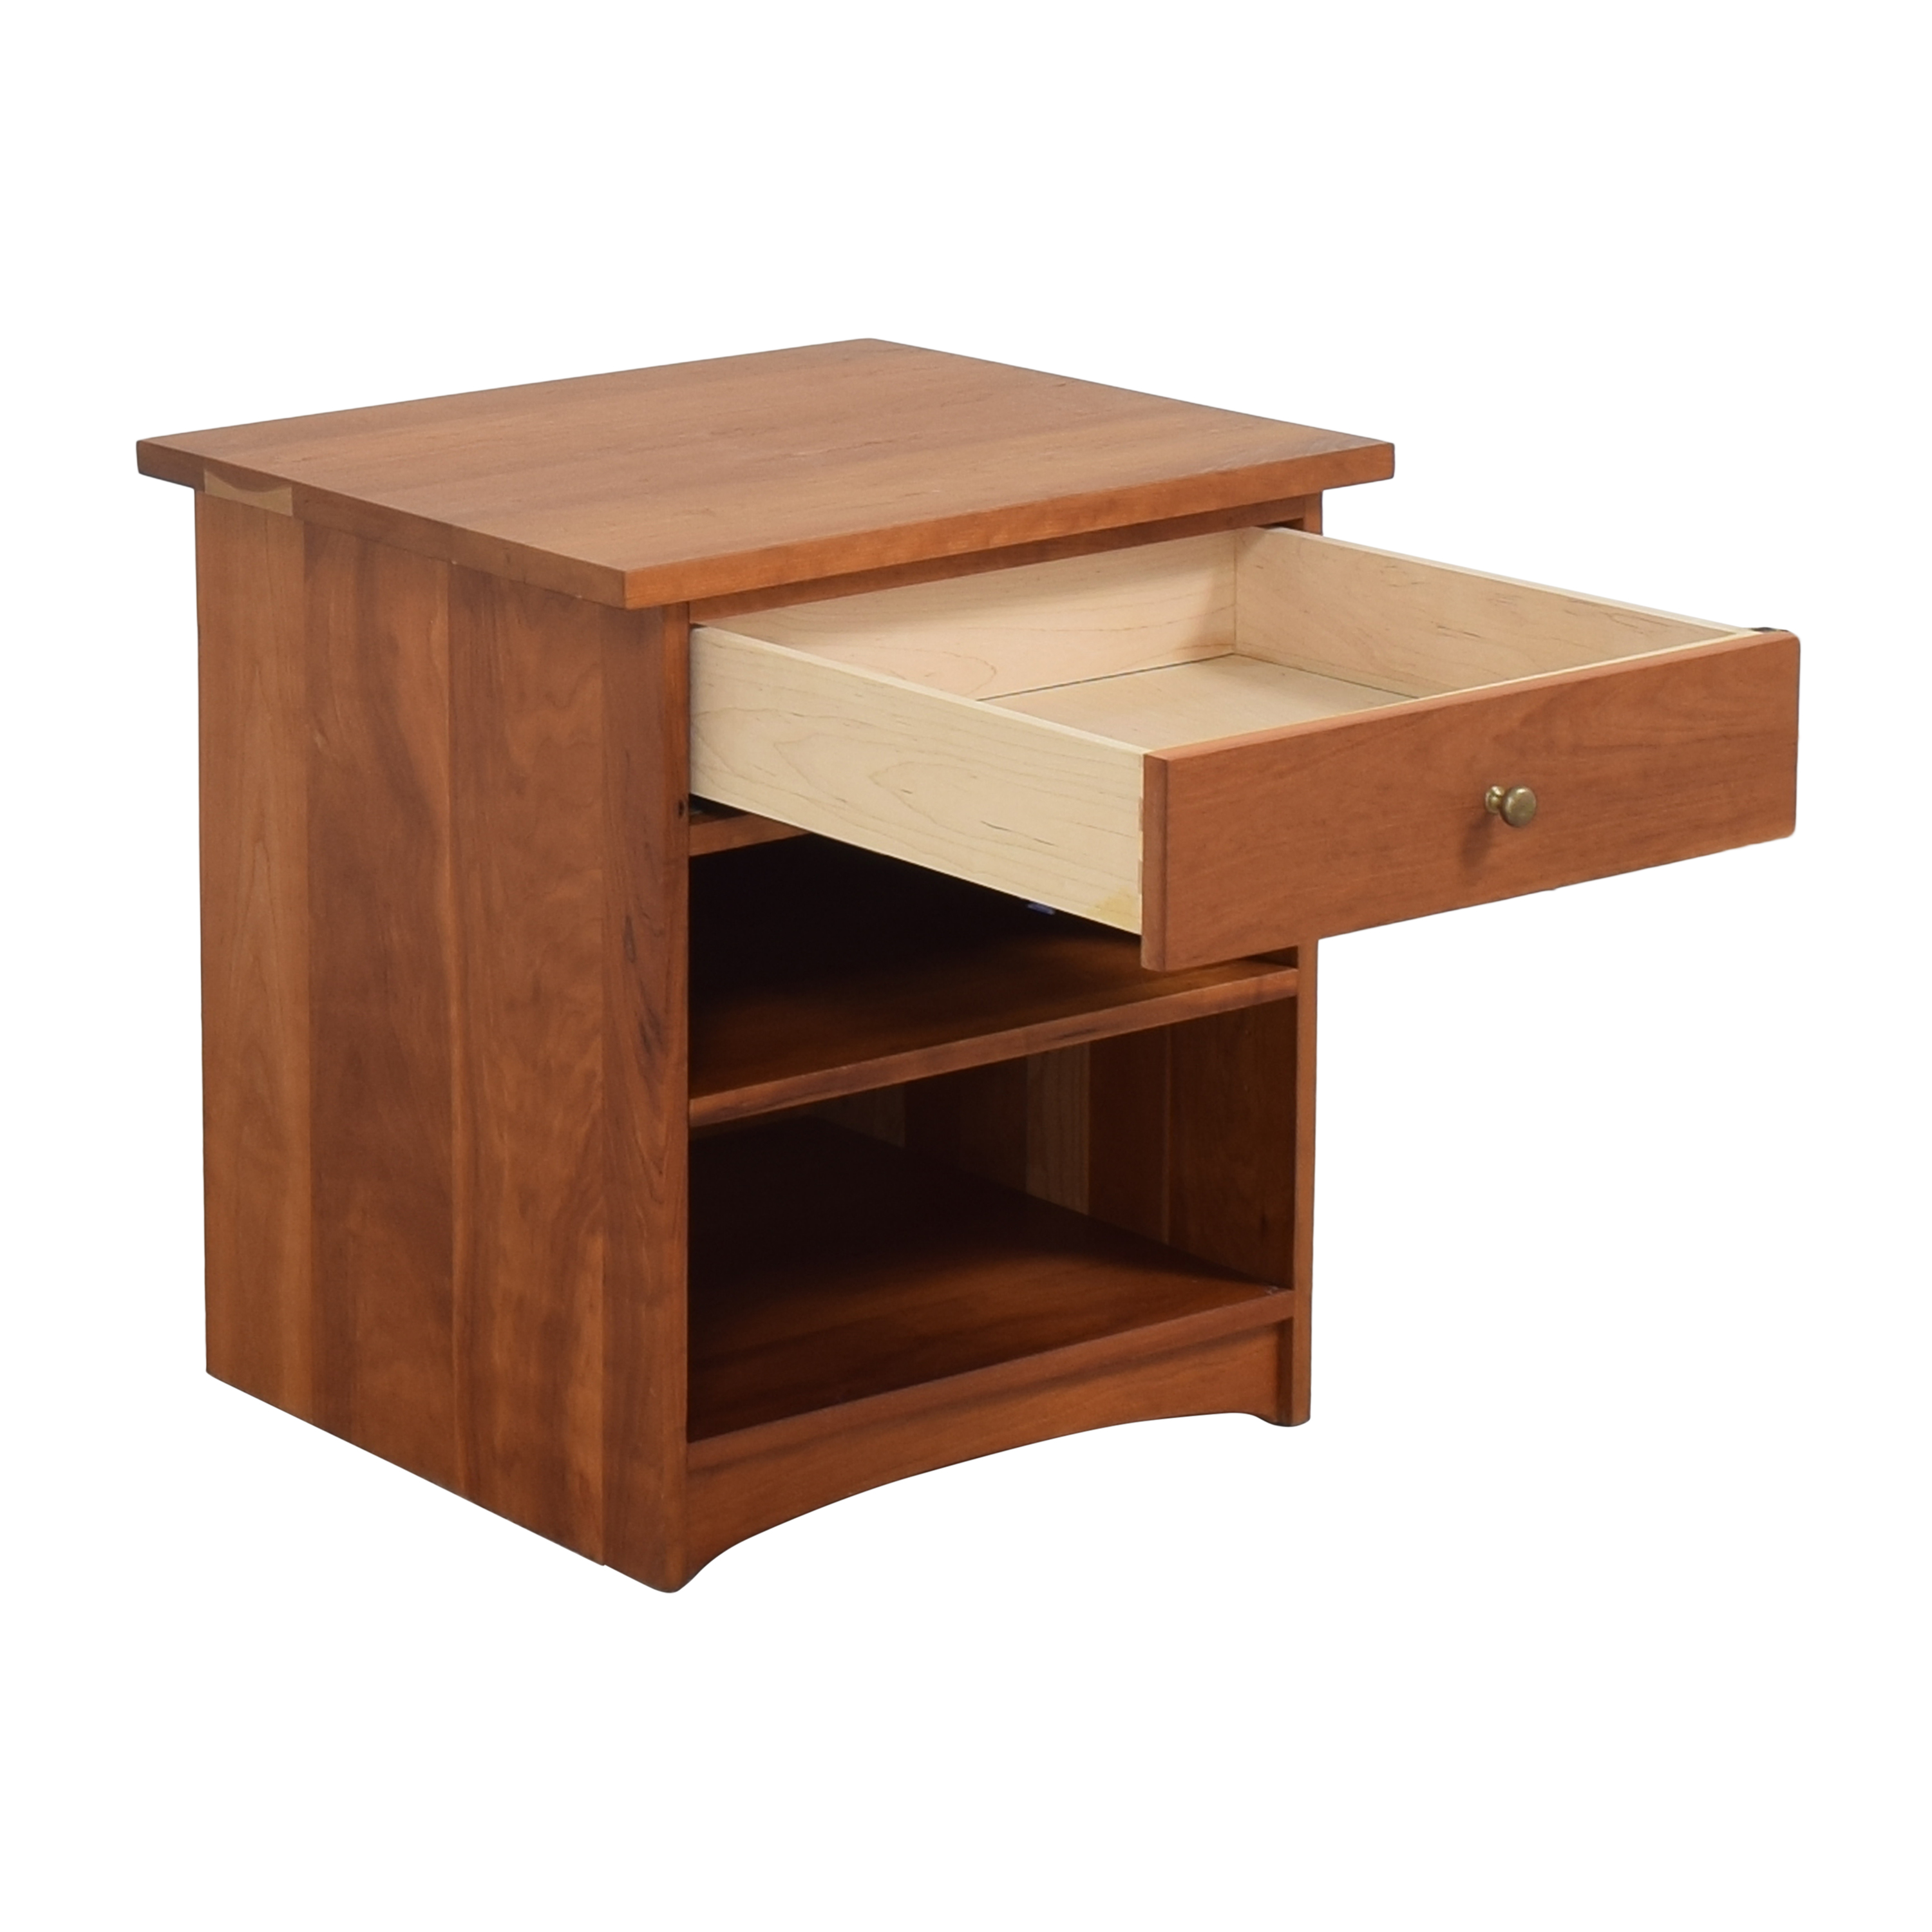 Scott Jordan Furniture Scott Jordan Furniture End Table price